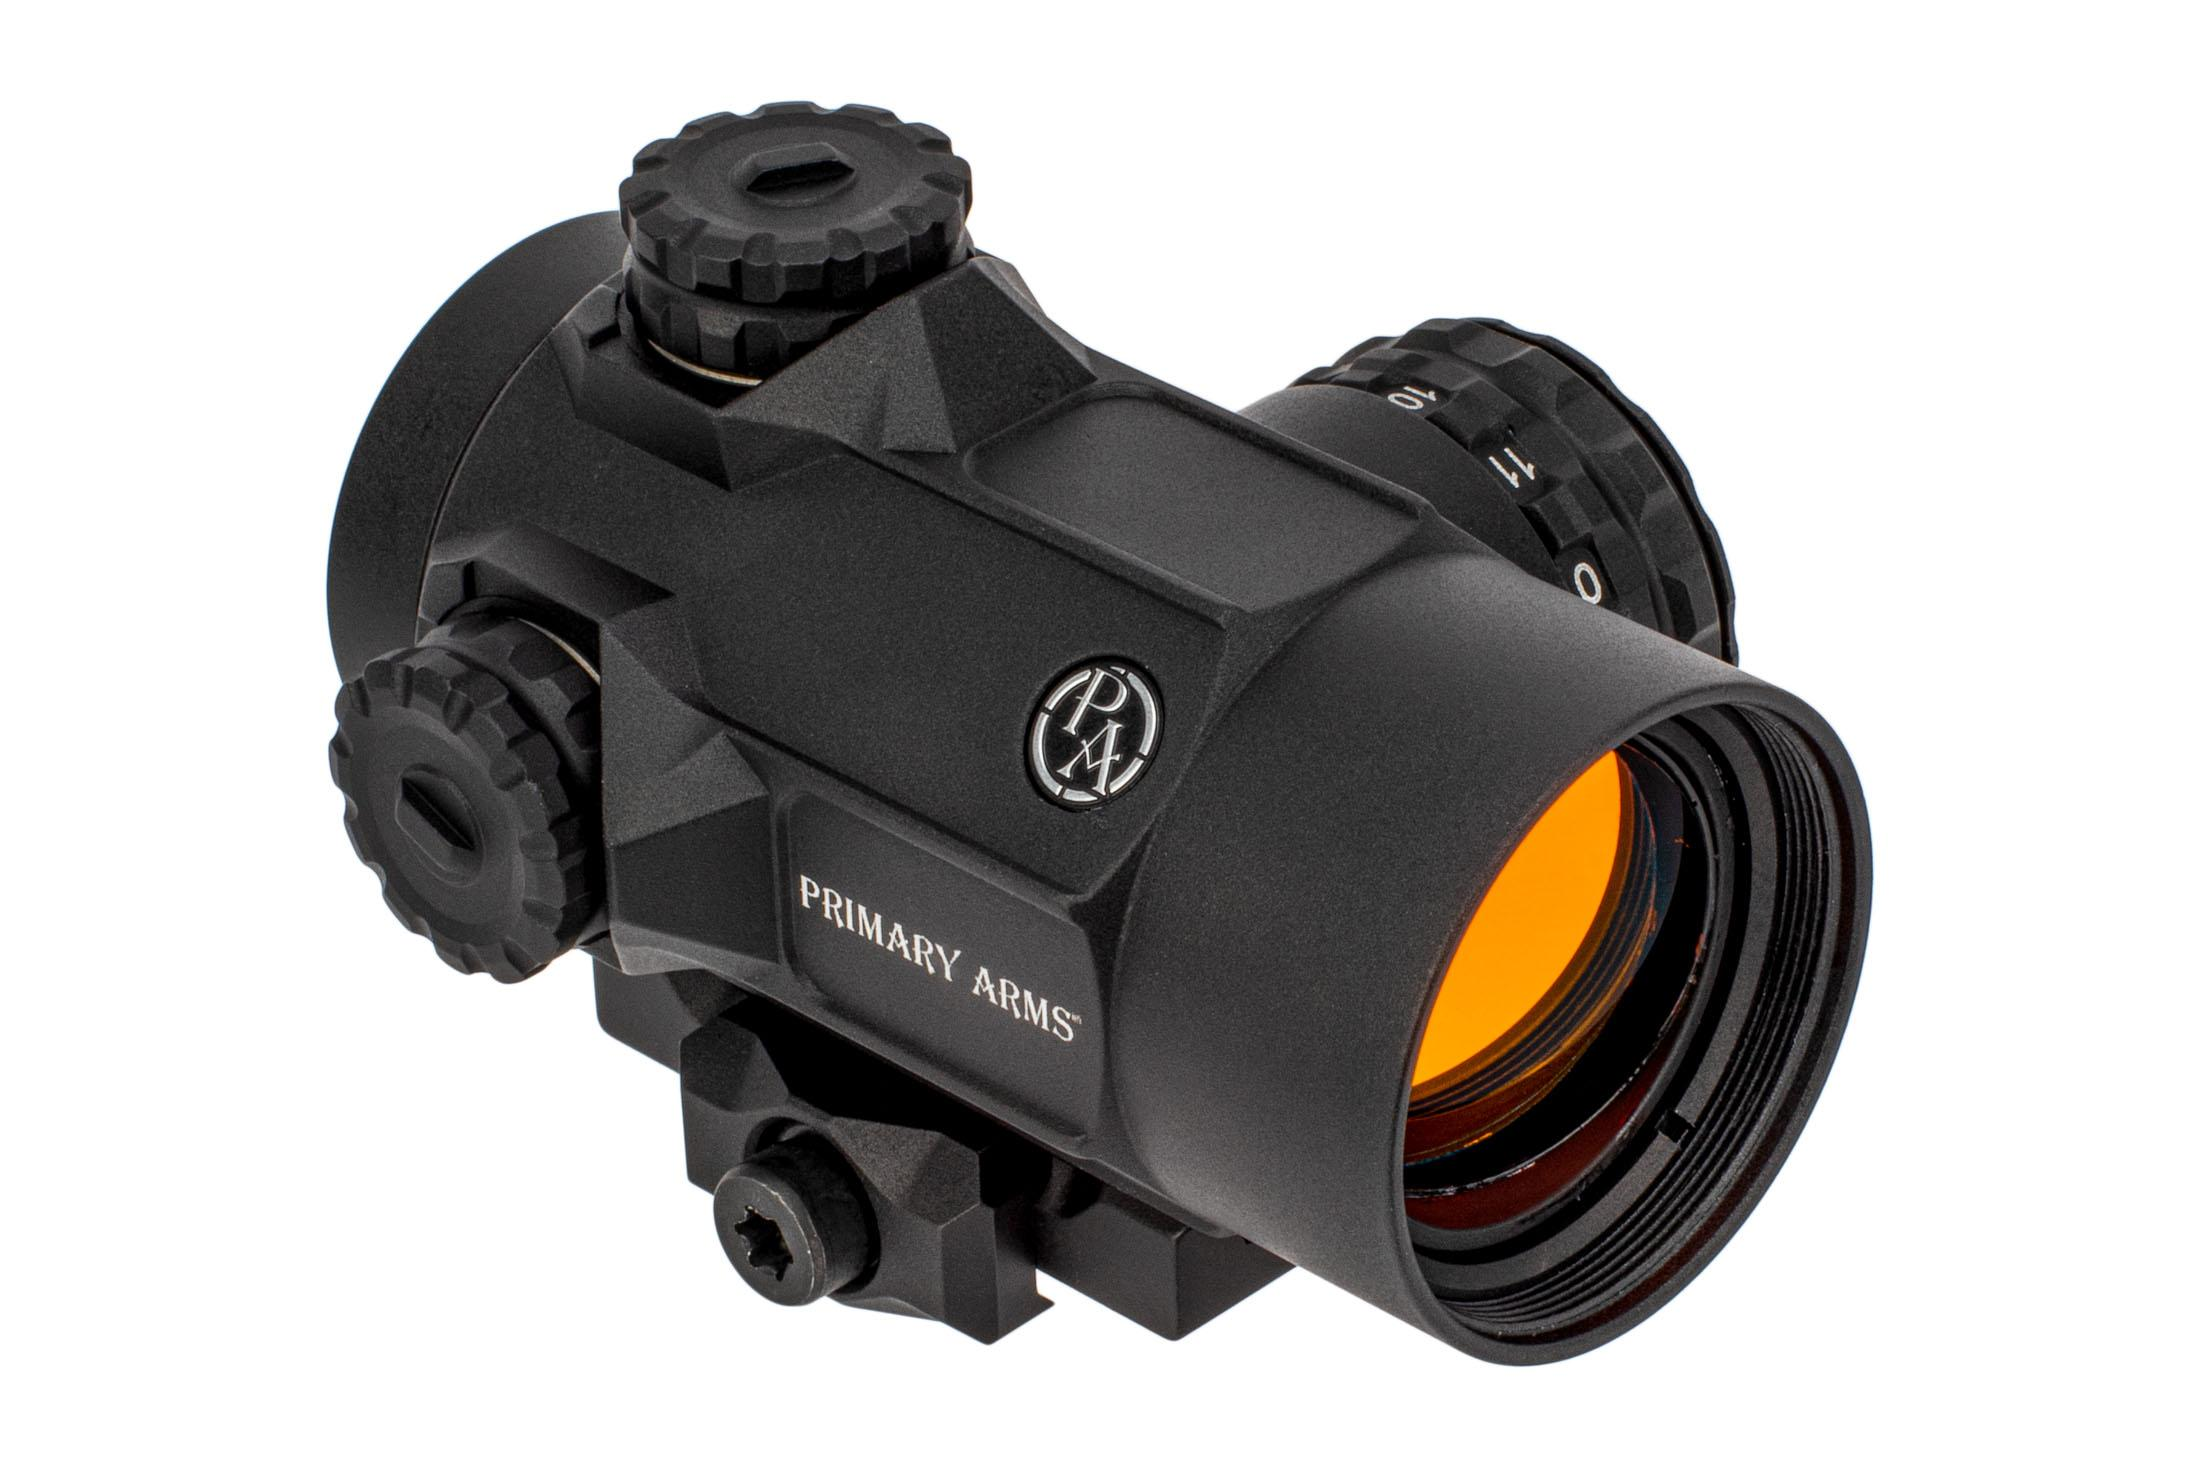 SLx MD-25 Rotary Knob 25mm Microdot with 2 MOA Red Dot Reticle